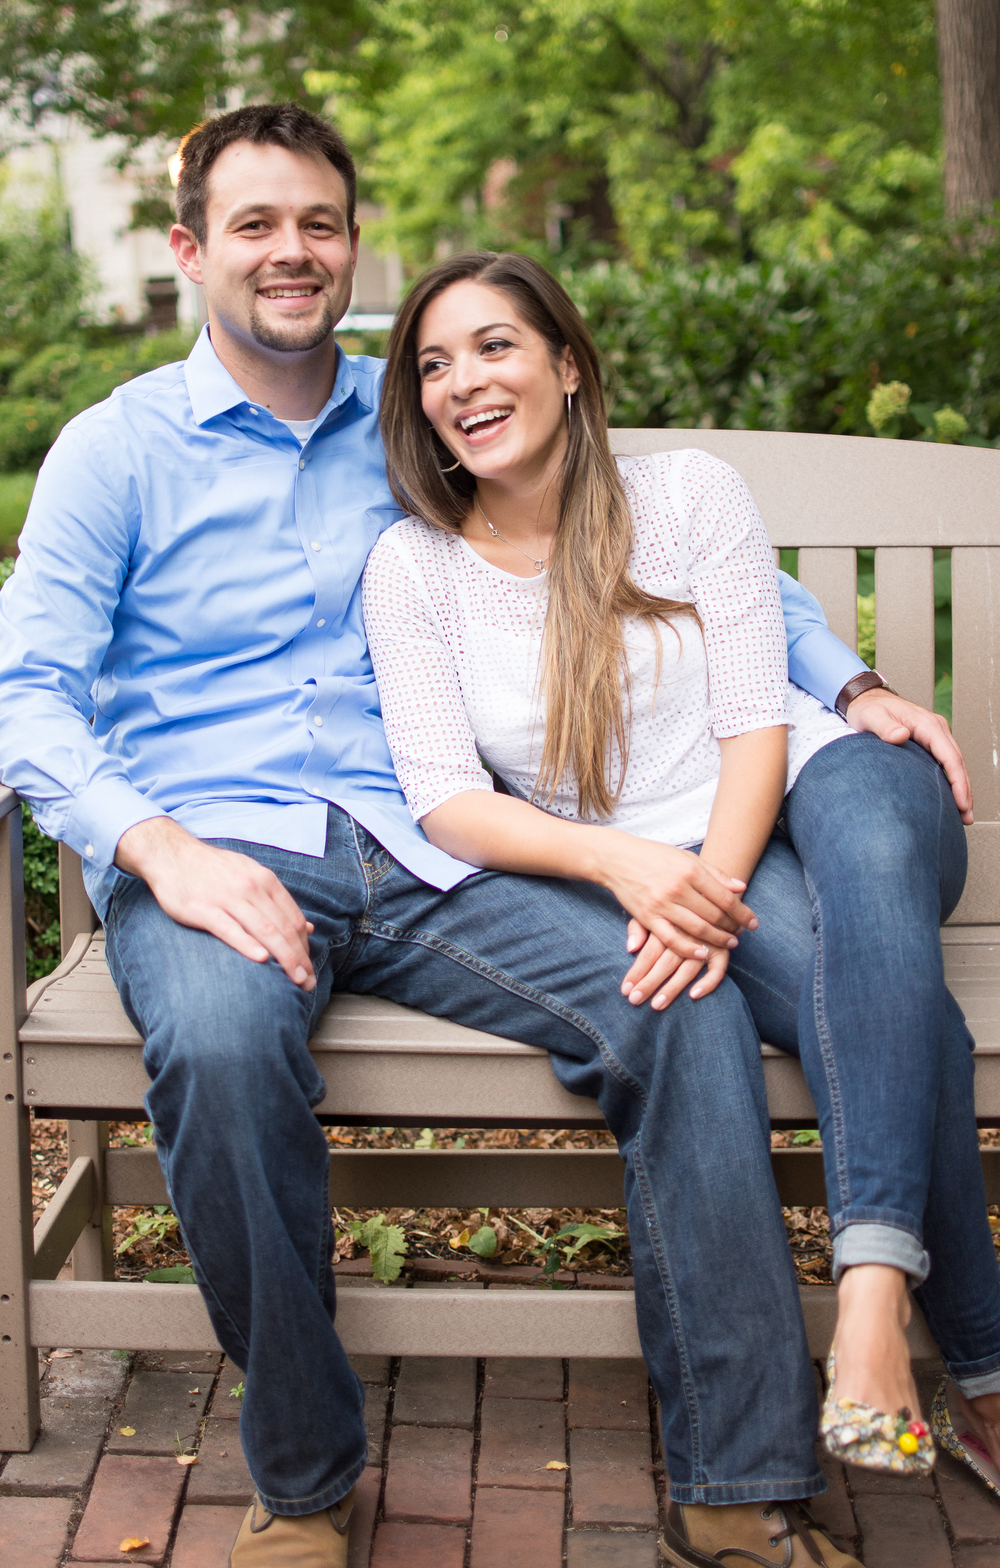 Old Town Alexandria Engagement Shoot